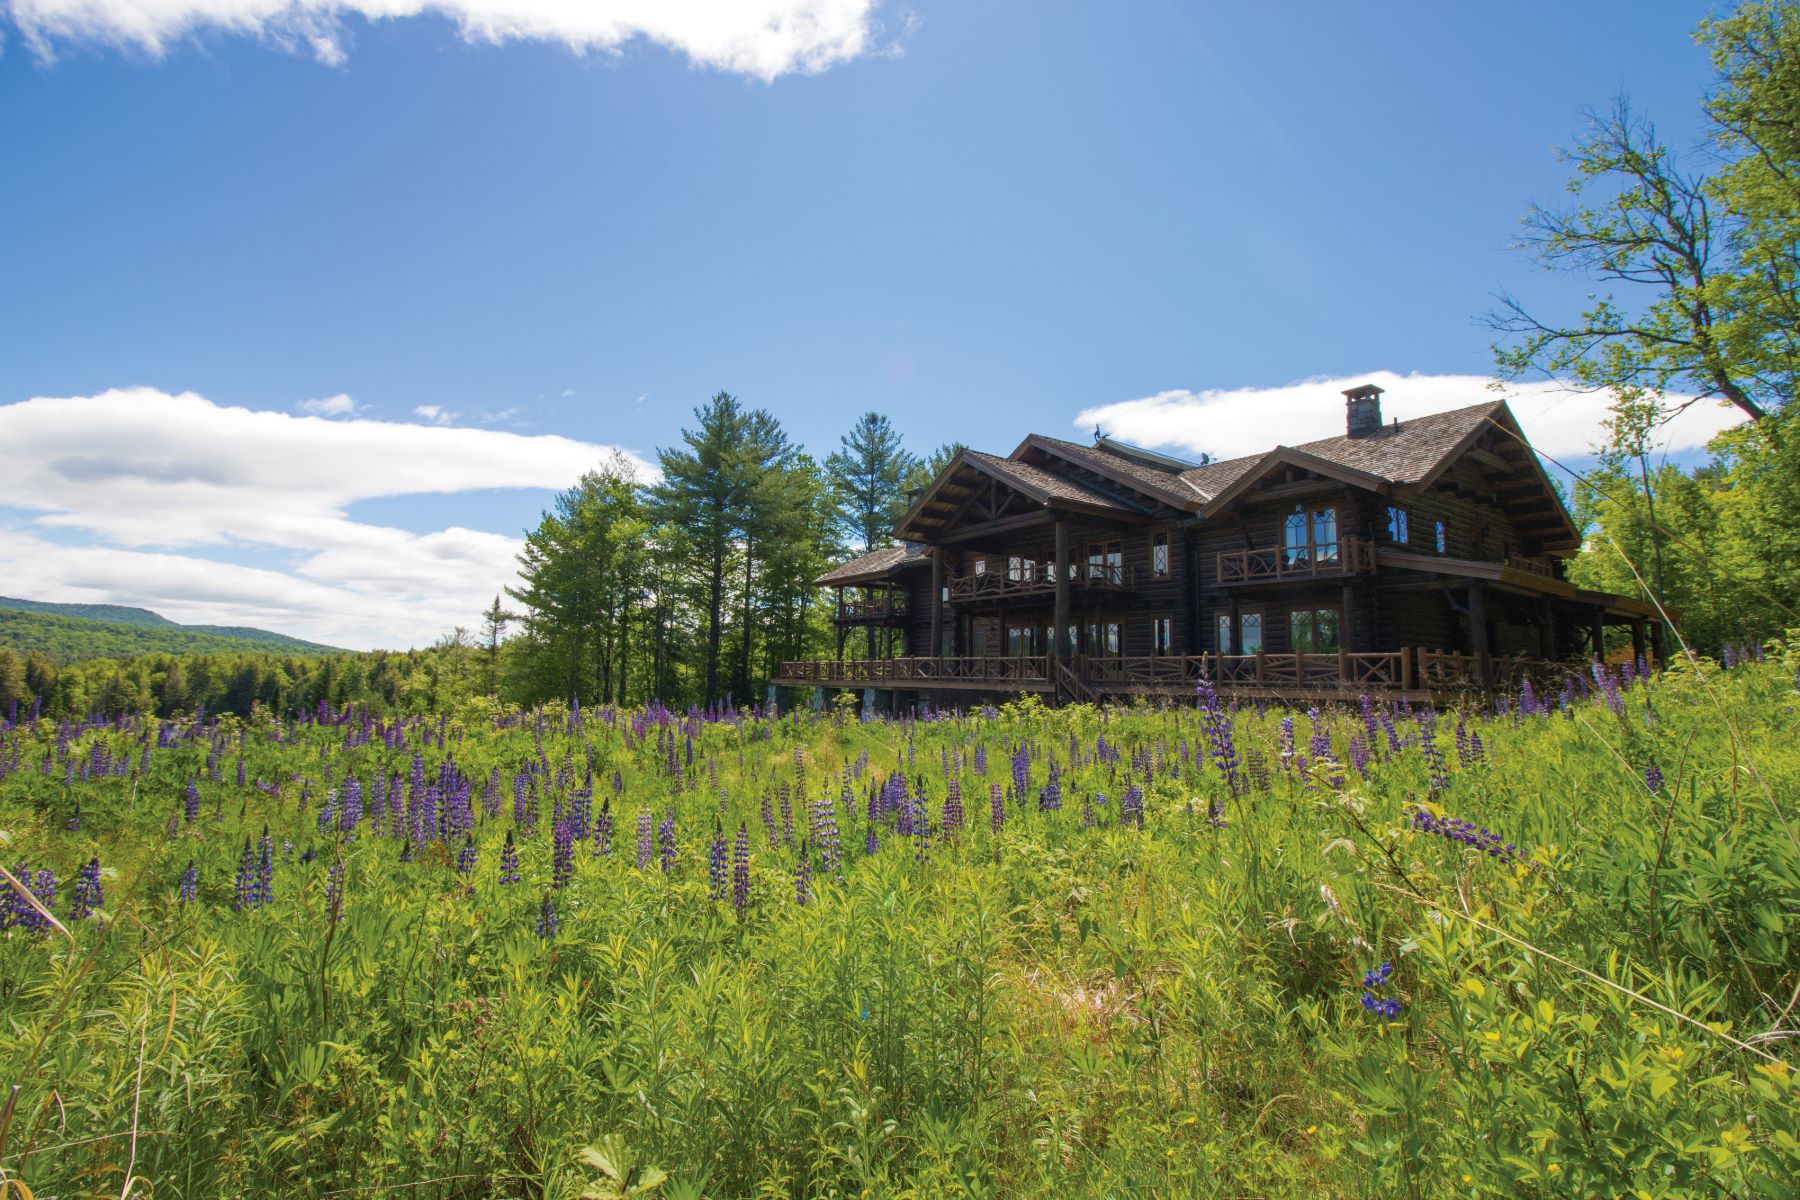 Single Family Homes for Sale at Skye Notch 490 Loch Muller Rd Schroon Lake, New York 12870 United States